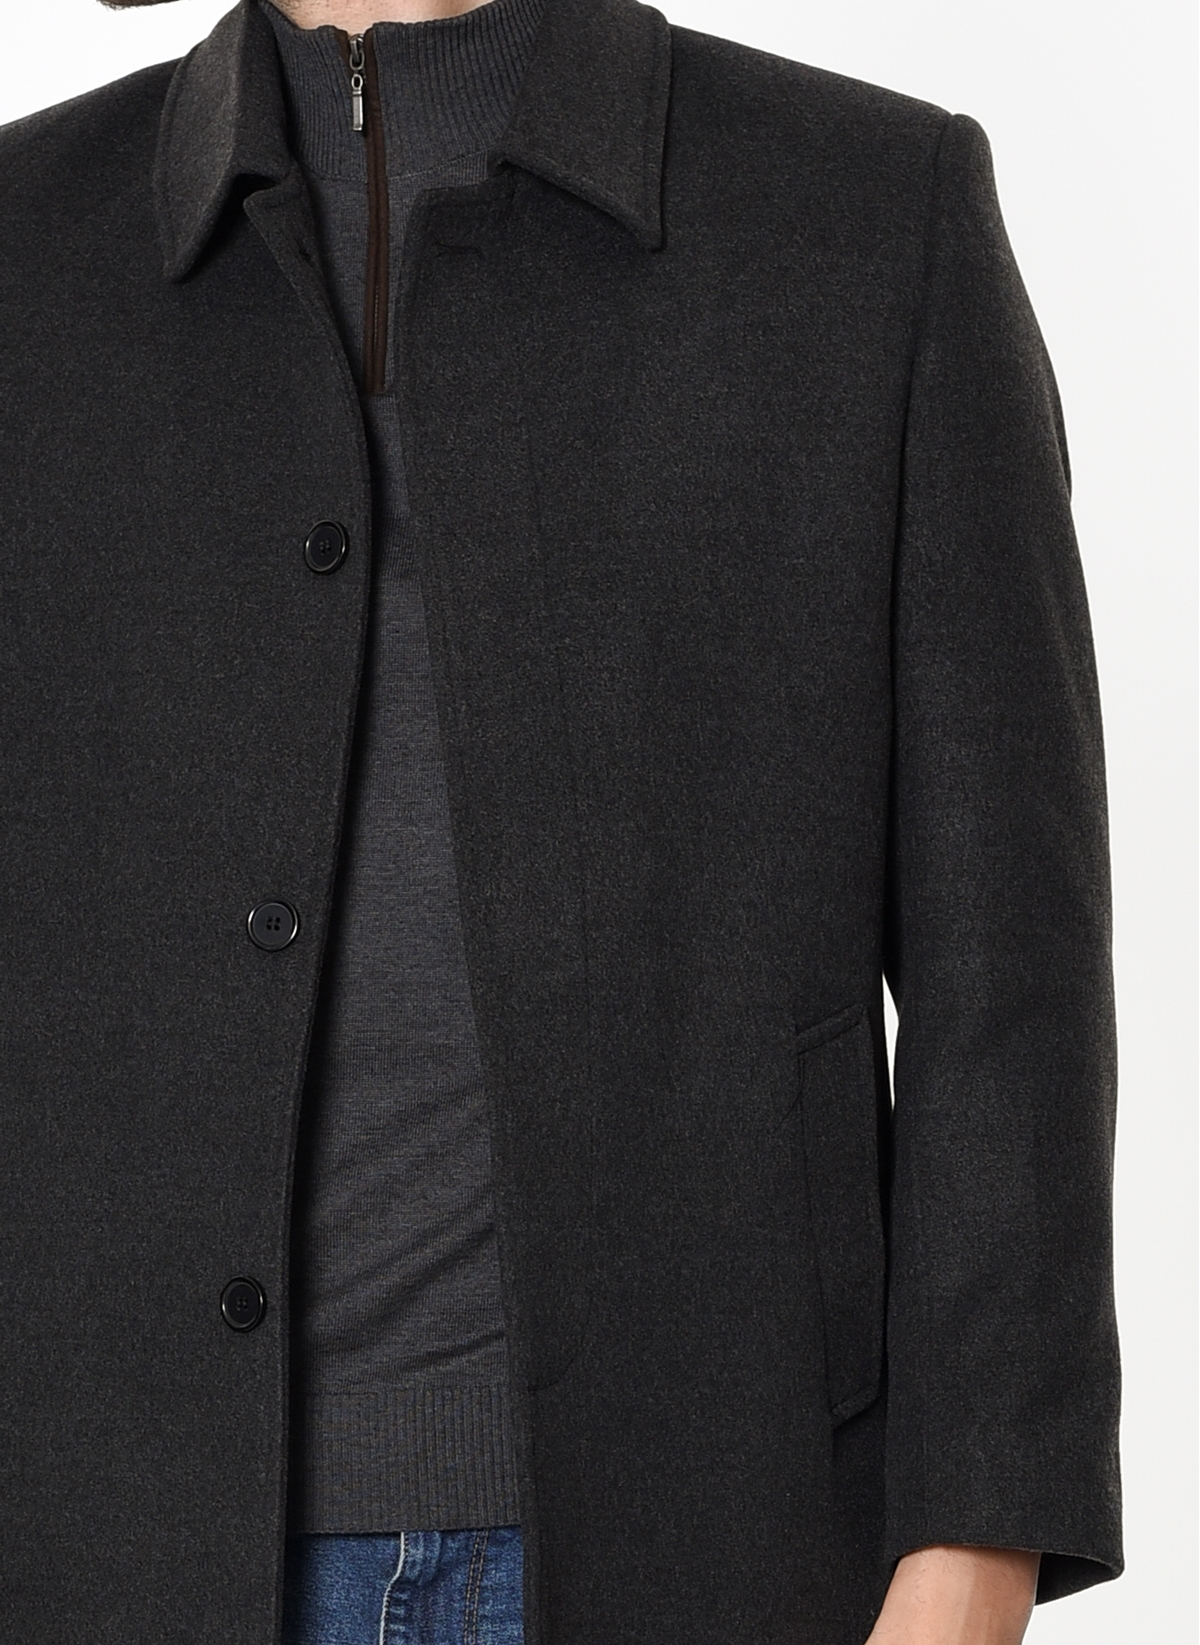 DFBB Mens Winter 2 Button All Embroidery Turn Down Collar Slim Fit Wool Outerwear Coats